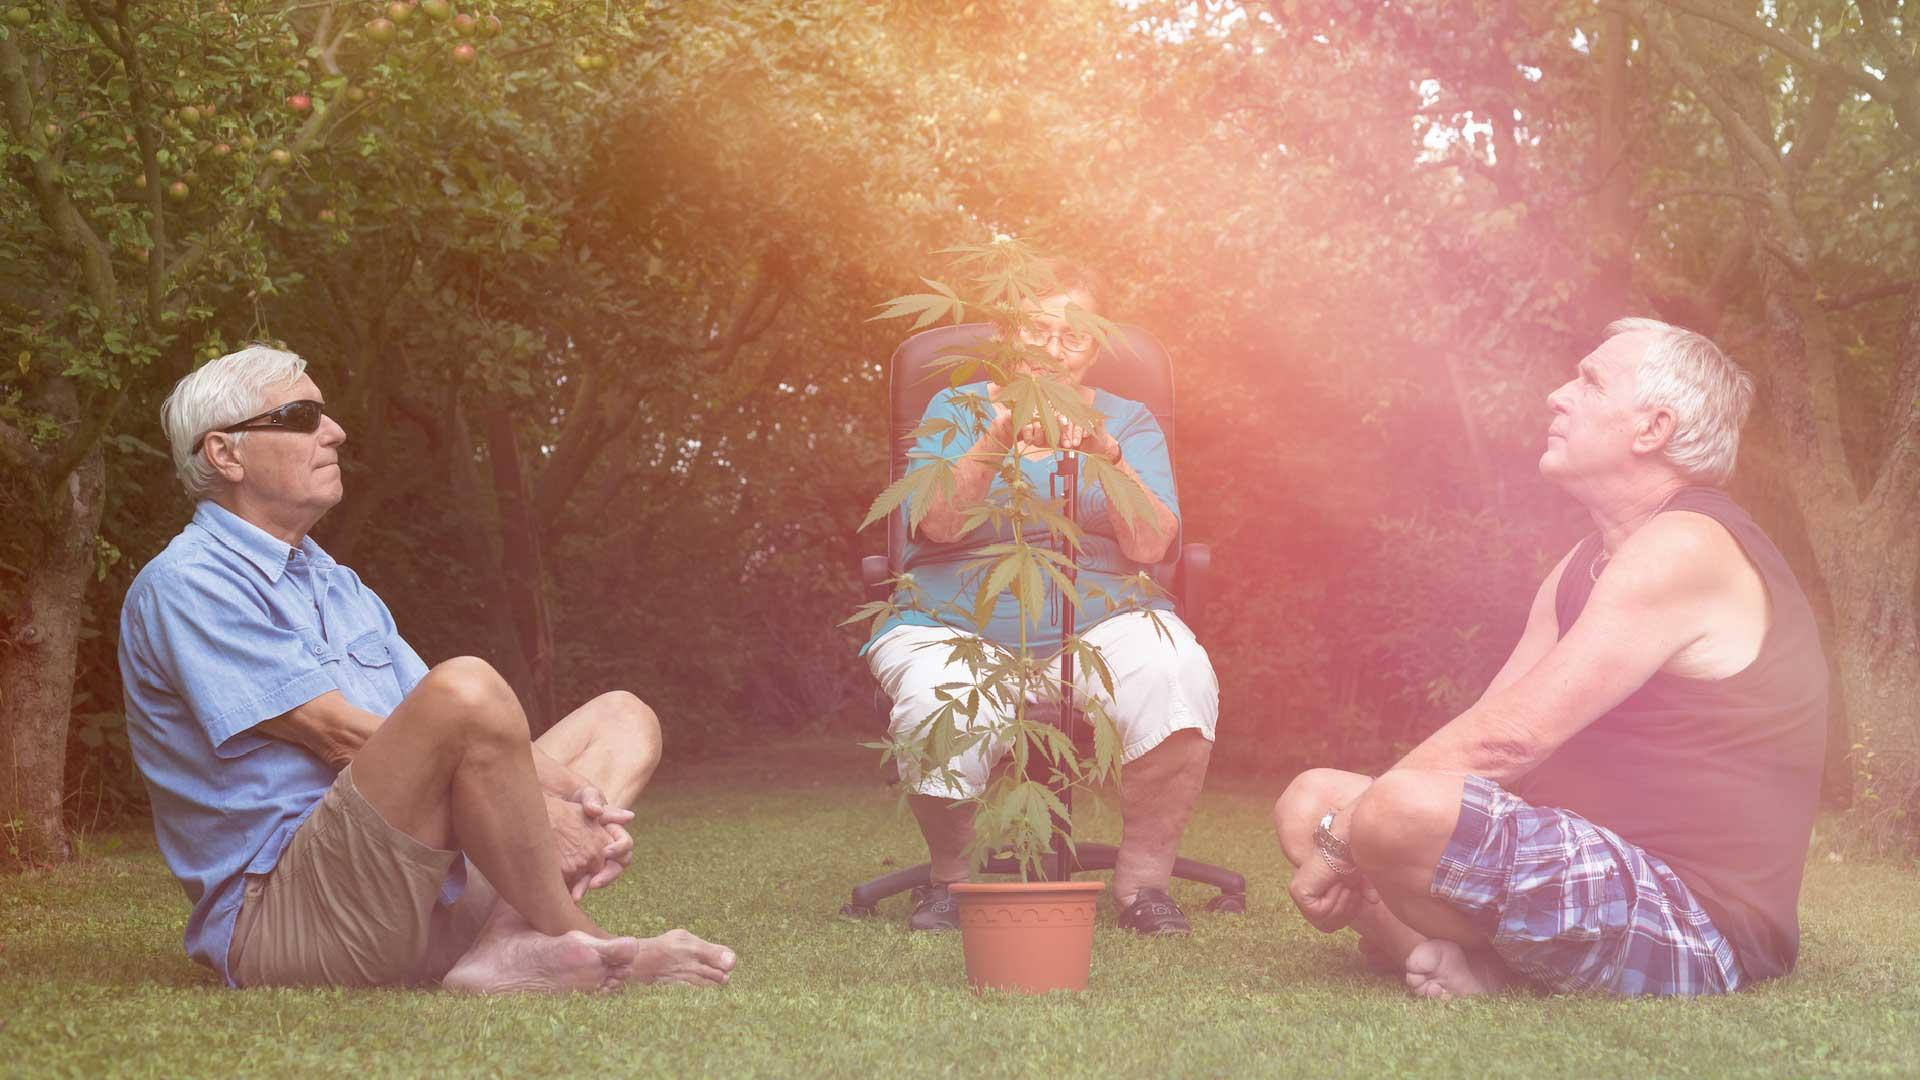 Why Do So Many Old People Smoke Weed?